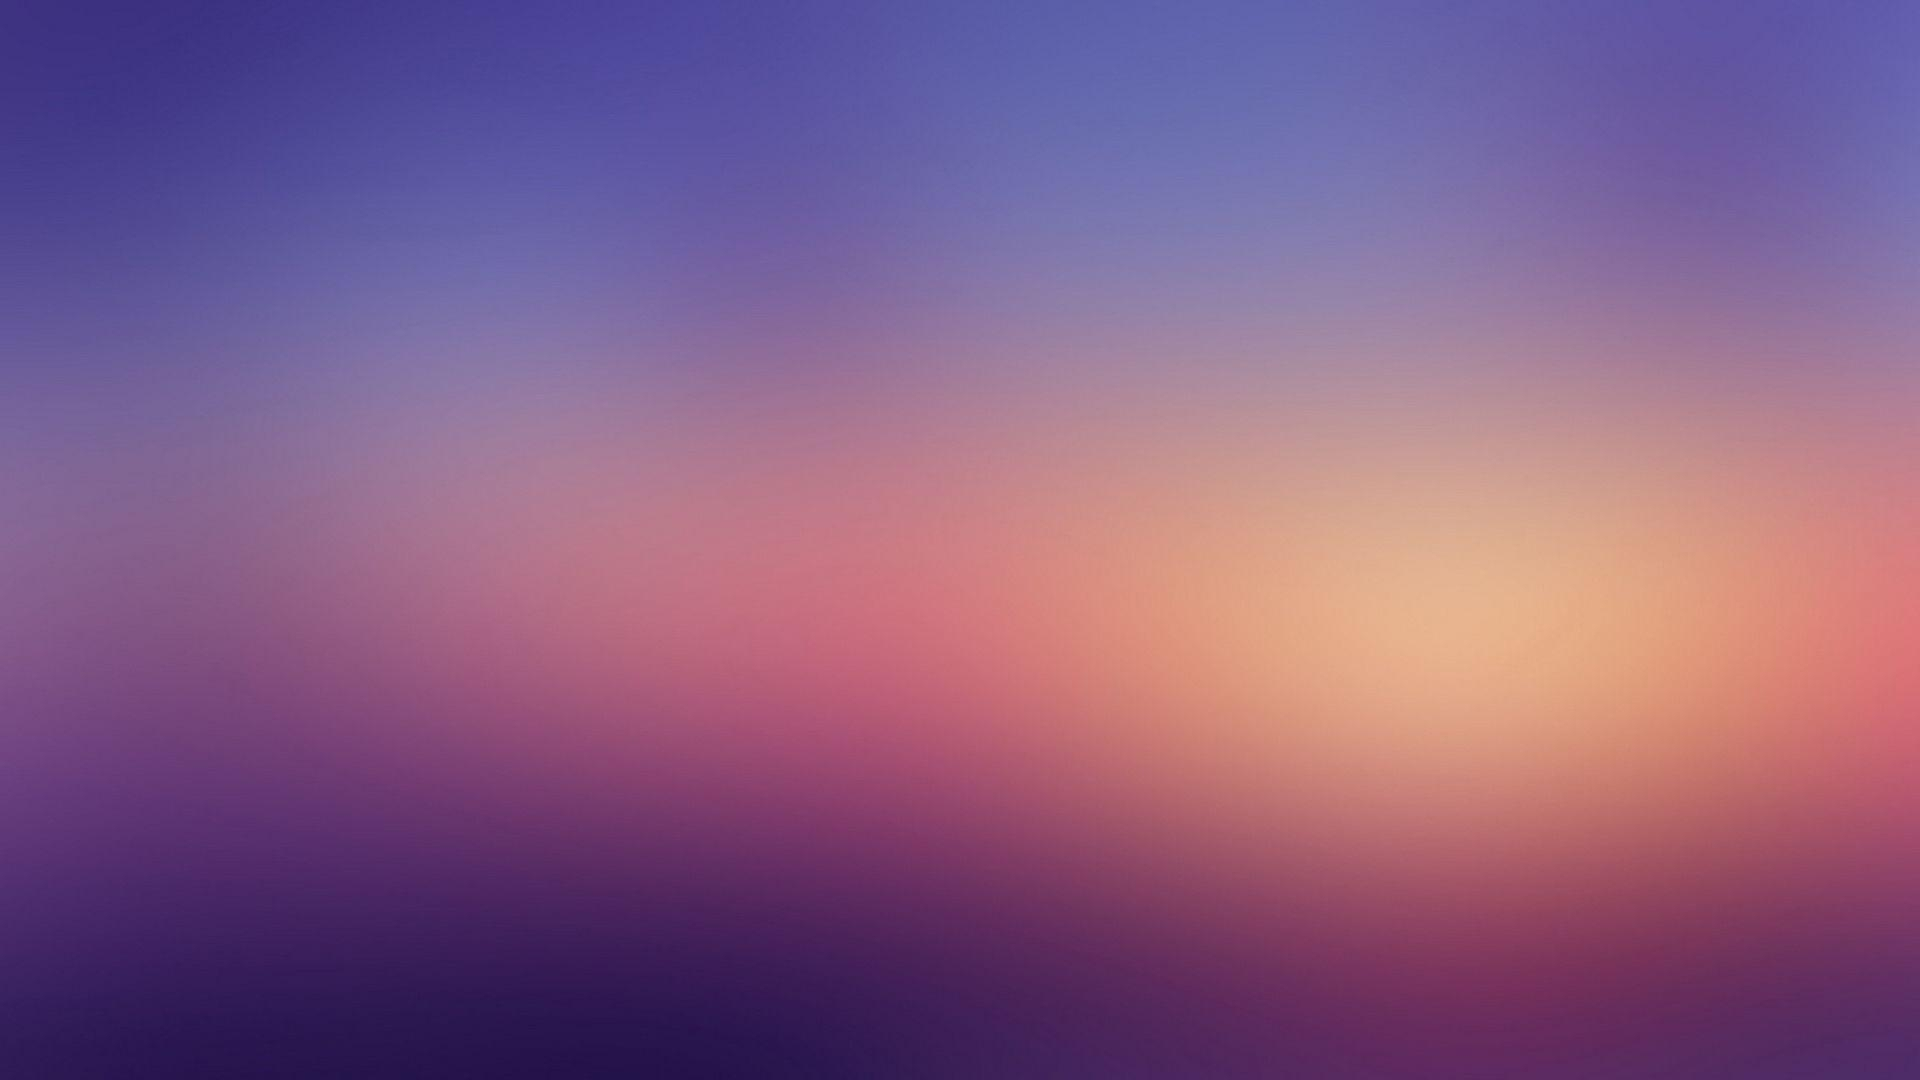 purple and orange backgrounds - wallpaper cave